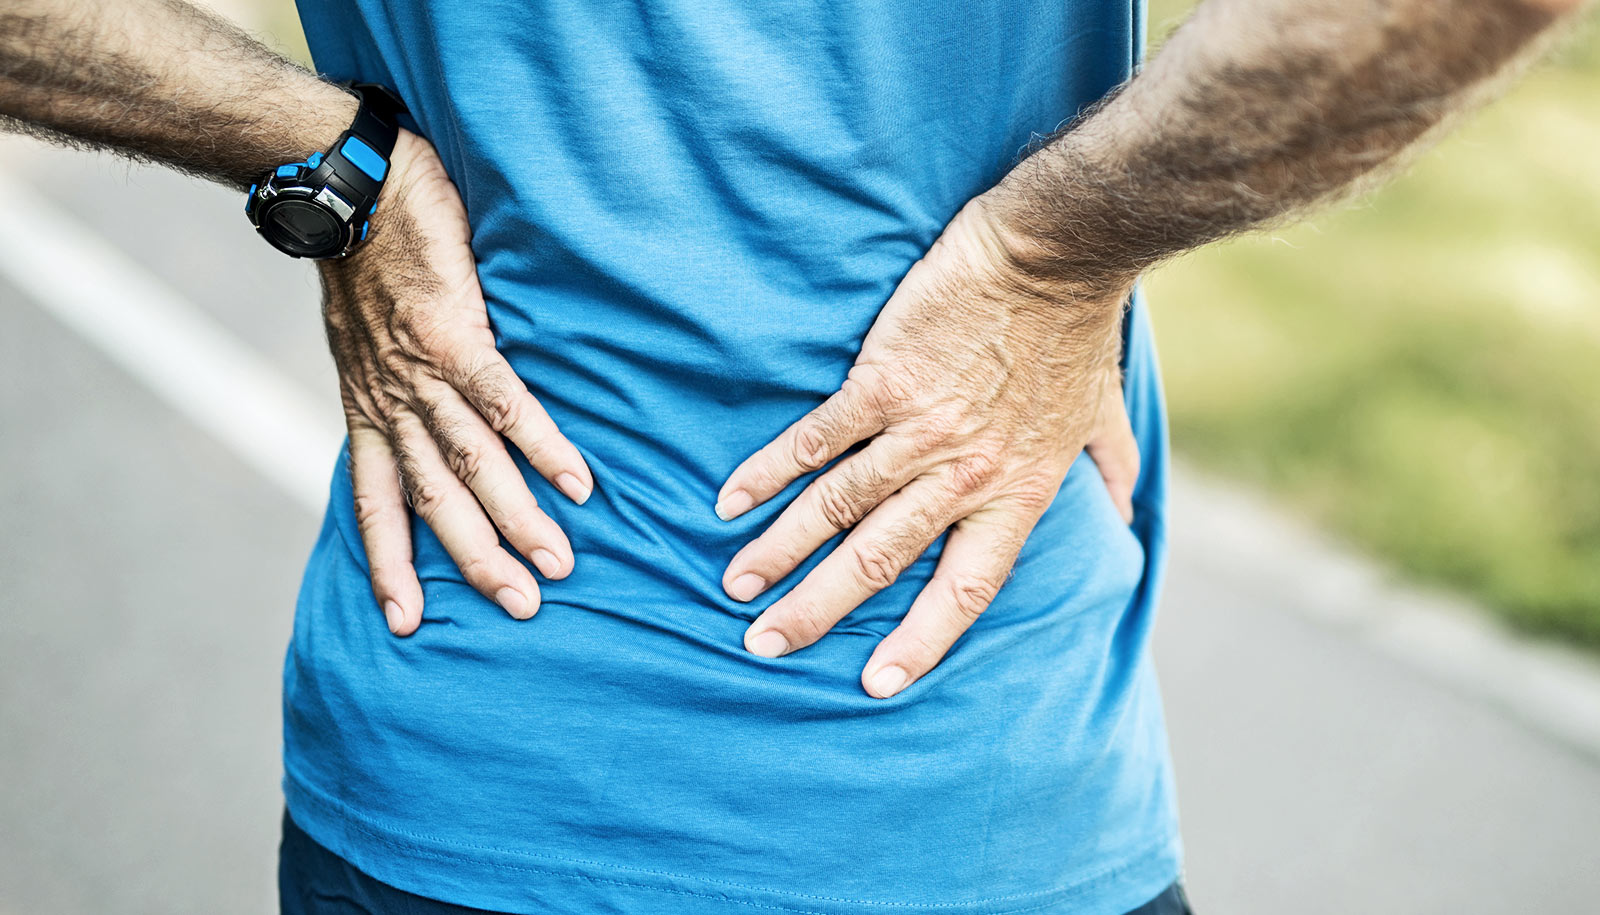 'Swiss cheese bones' could cause mystery low back pain